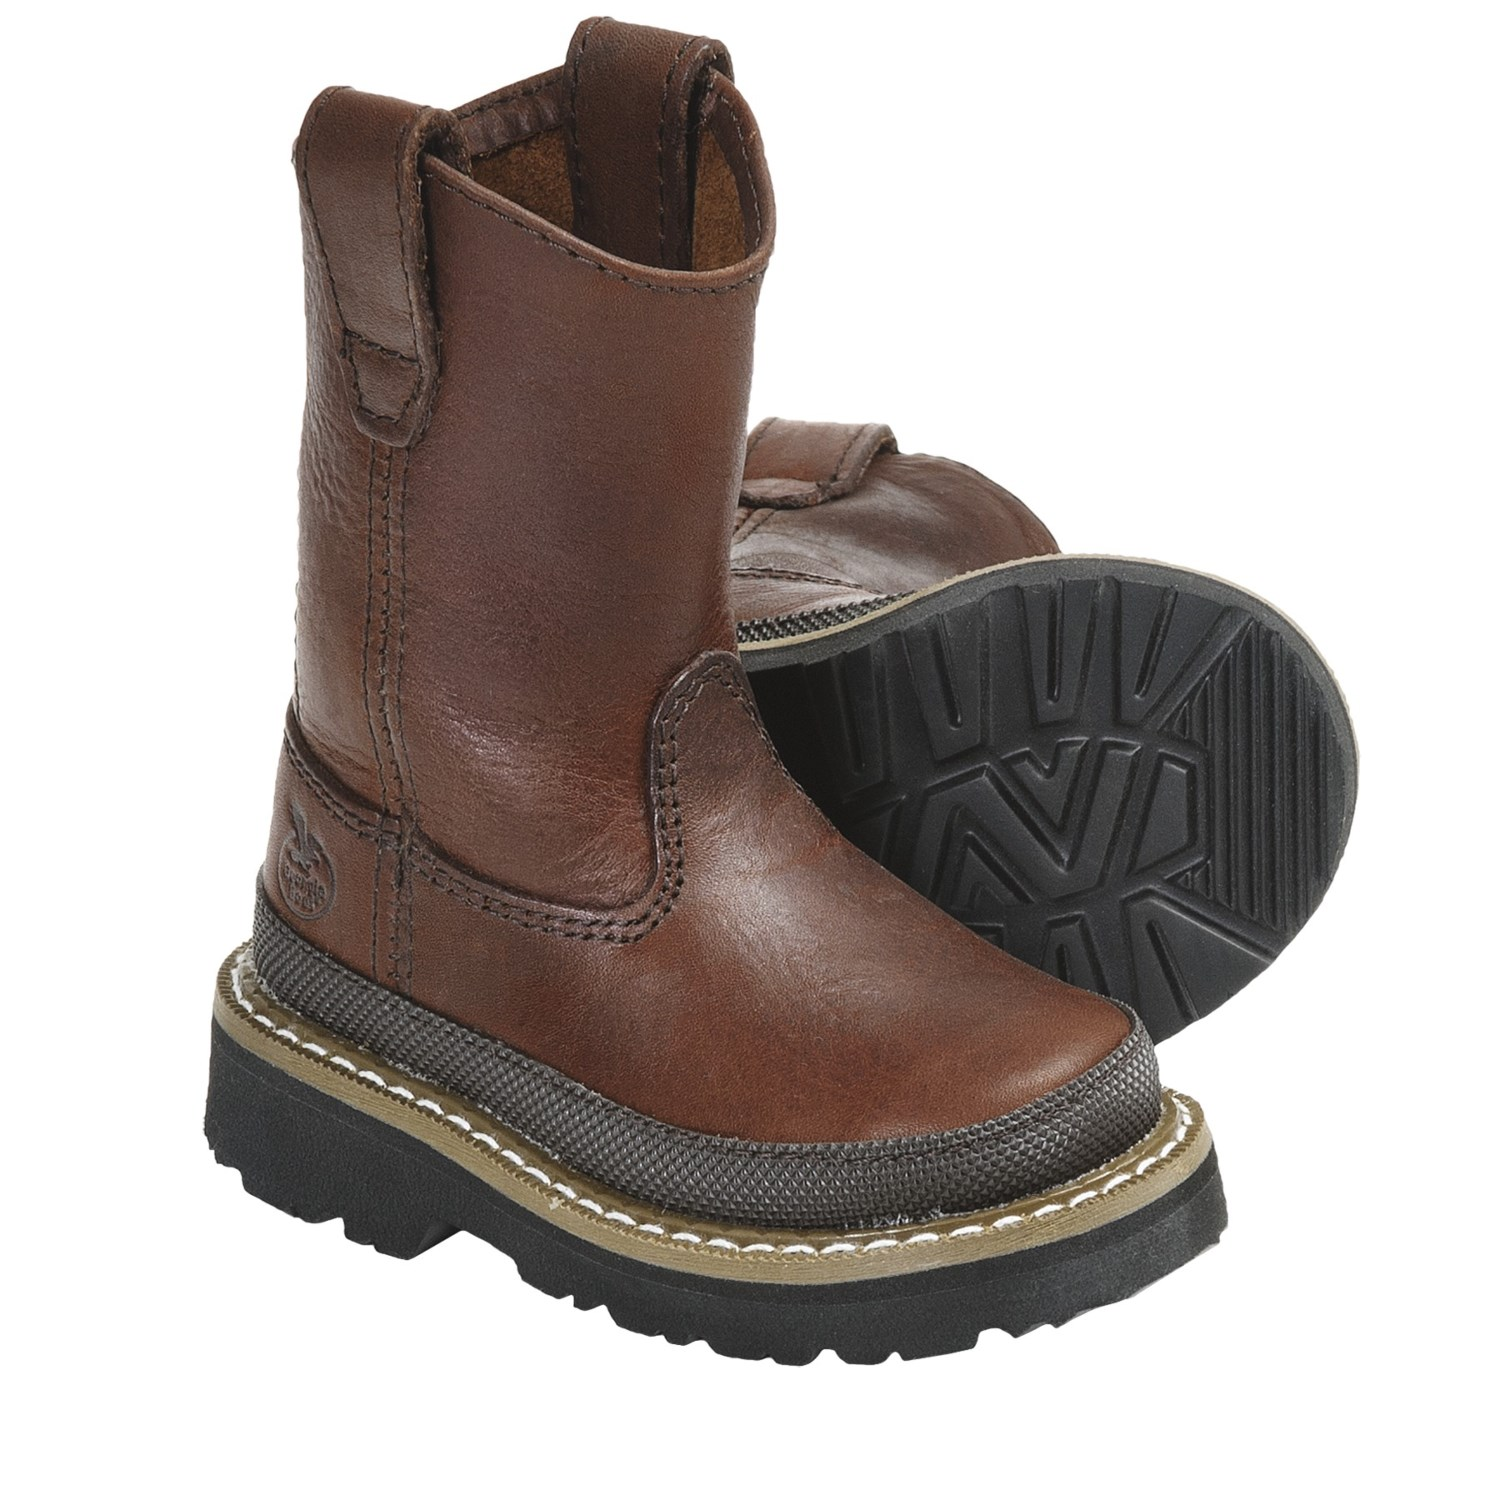 GEORGIA BOOT KiDS CHILDREN'S FULL GRAIN LEATHER LACER BOOTS G size See more like this. G Kids Georgia Boots. Brand New. $ or Best Offer. Free Shipping. GEORGIA BOOT Boys Youth Brown Leather Rubber Work Wellington Boots .